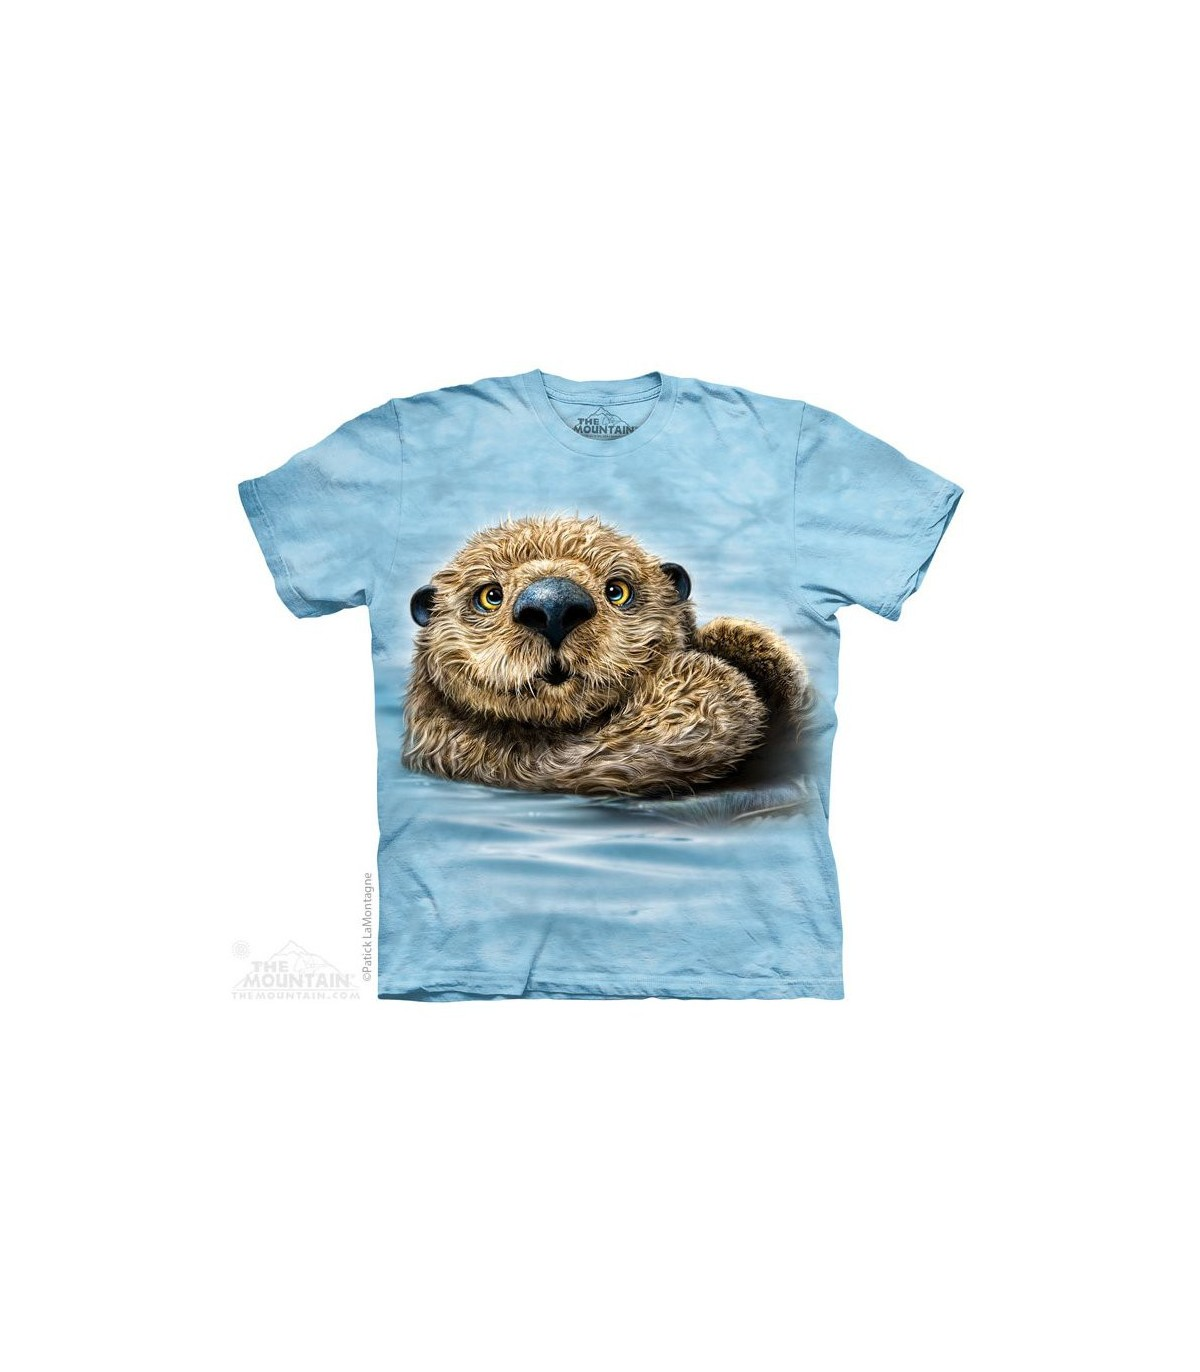 OTTERS IN LOVE 100/% COTTON CUTE WILD ANIMAL FRIENDS WOMENS  TSHIRTS T-SHIRT TOP